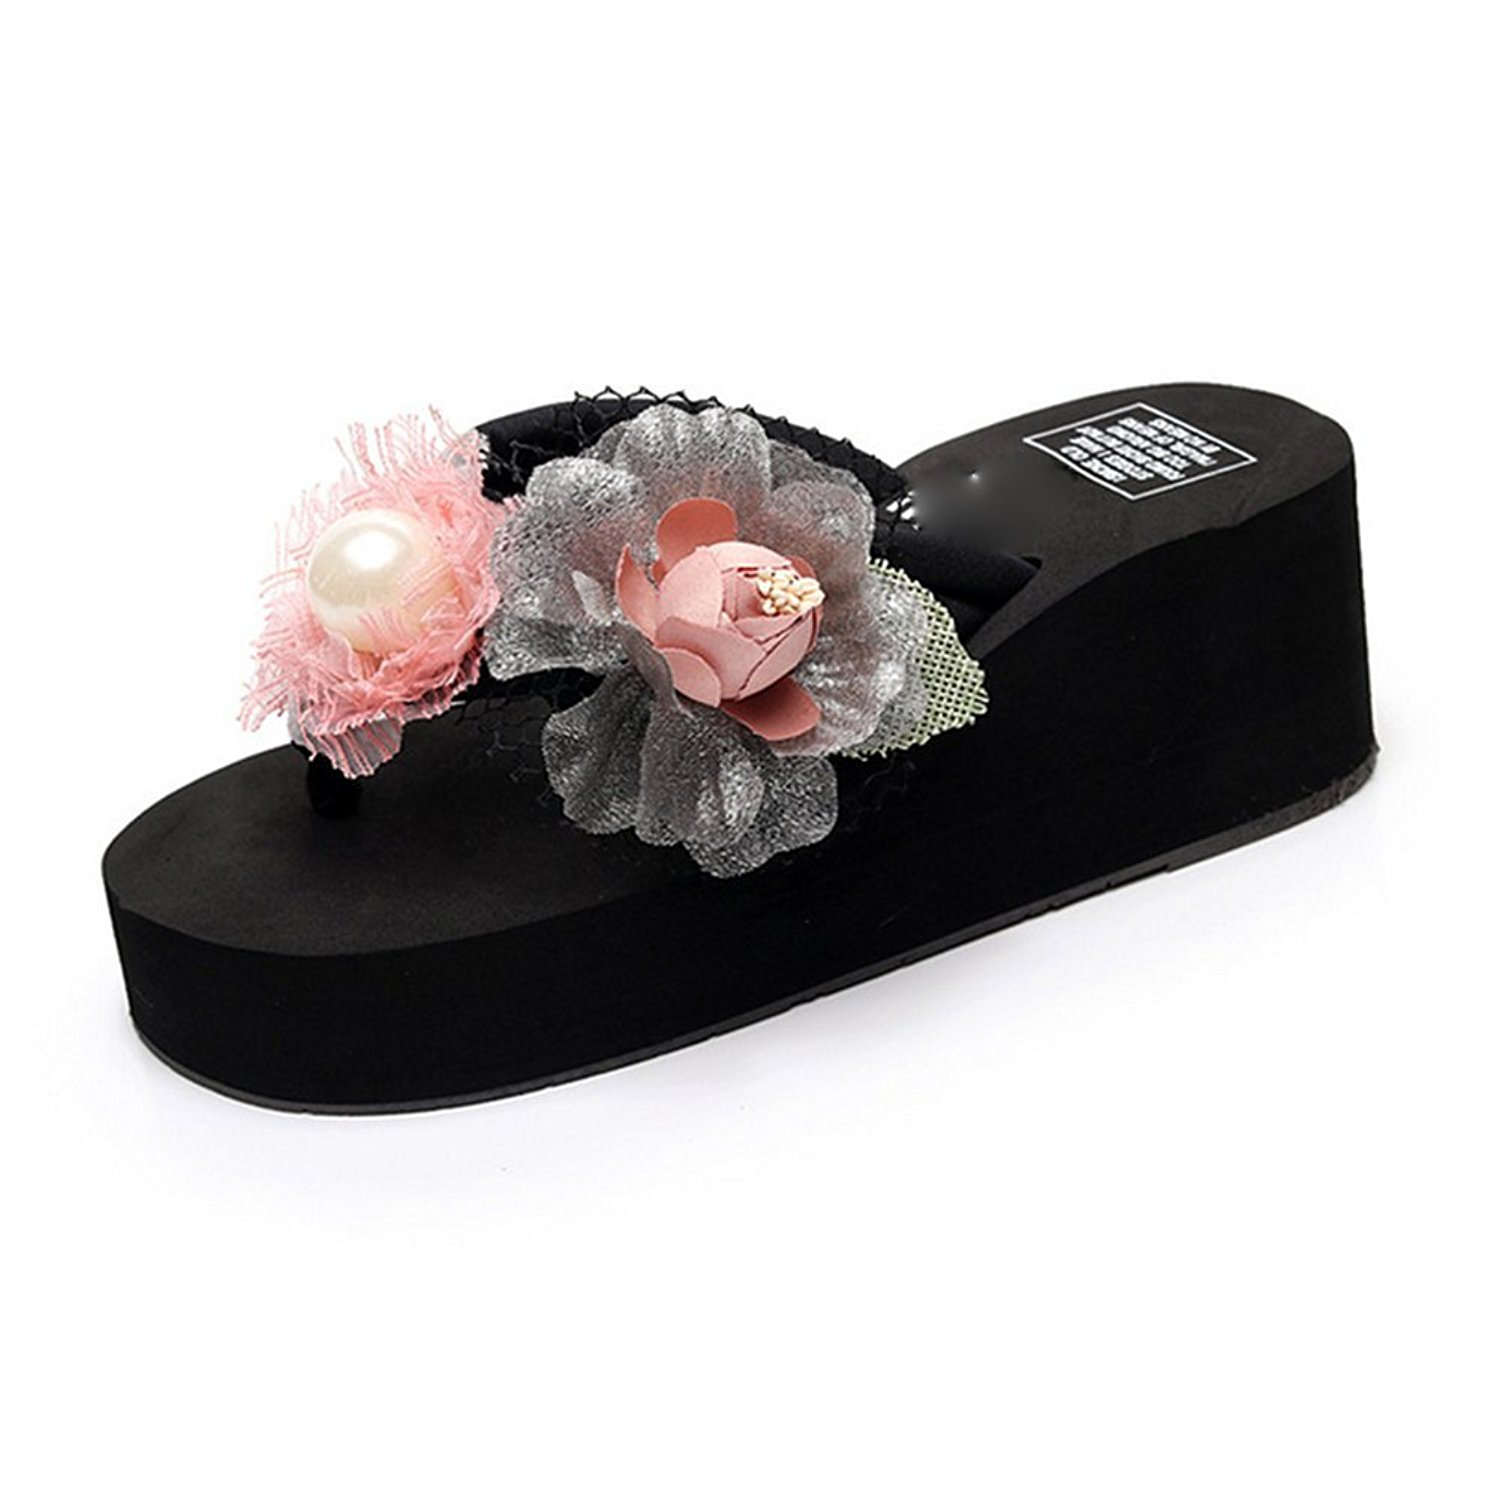 MET RXL Lady,Summer,Slippers//Leisure,Wedges,Thick-Soled,A-line Slipper